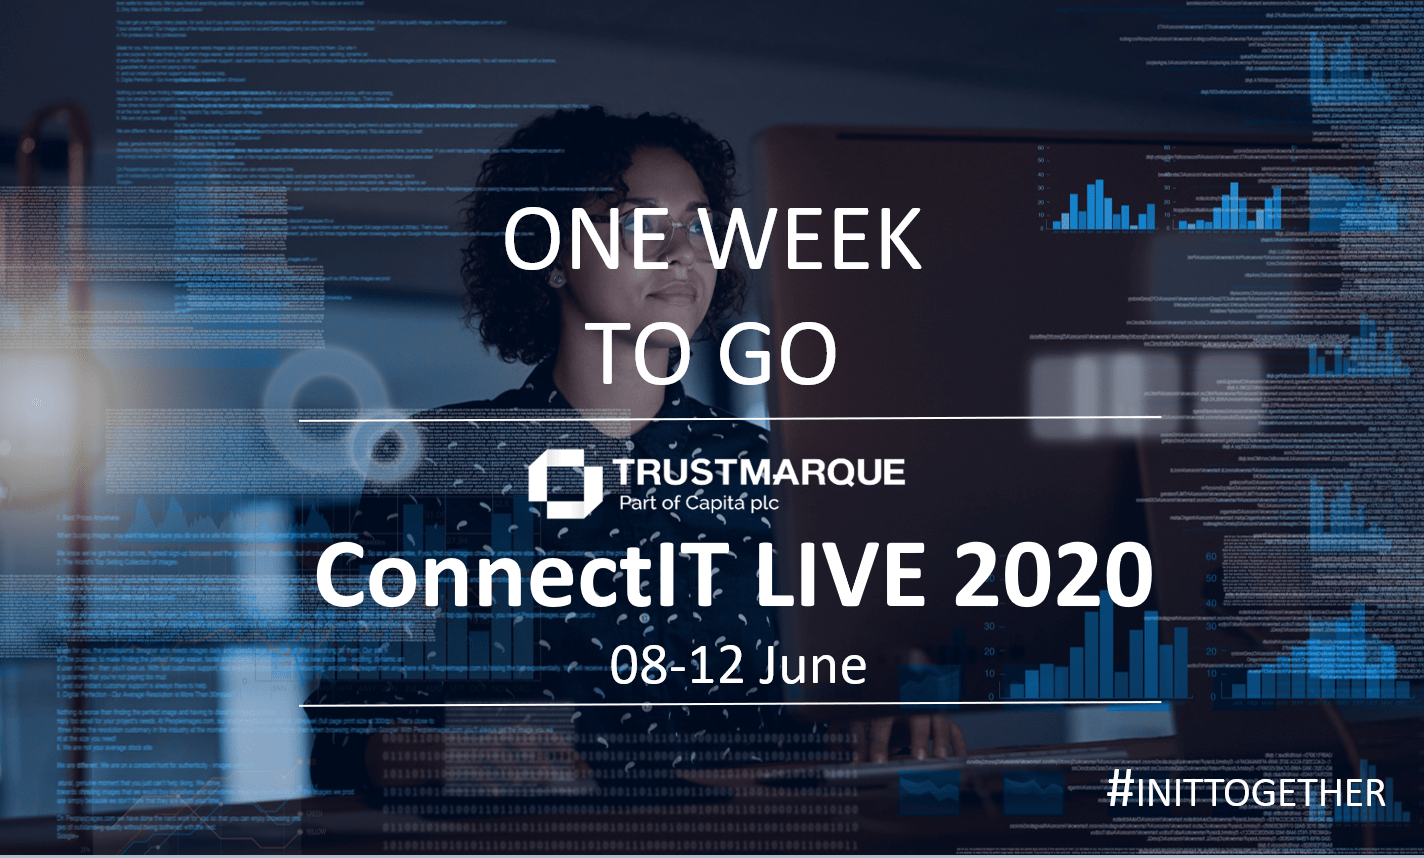 One week to go until ConnectIT LIVE 2020